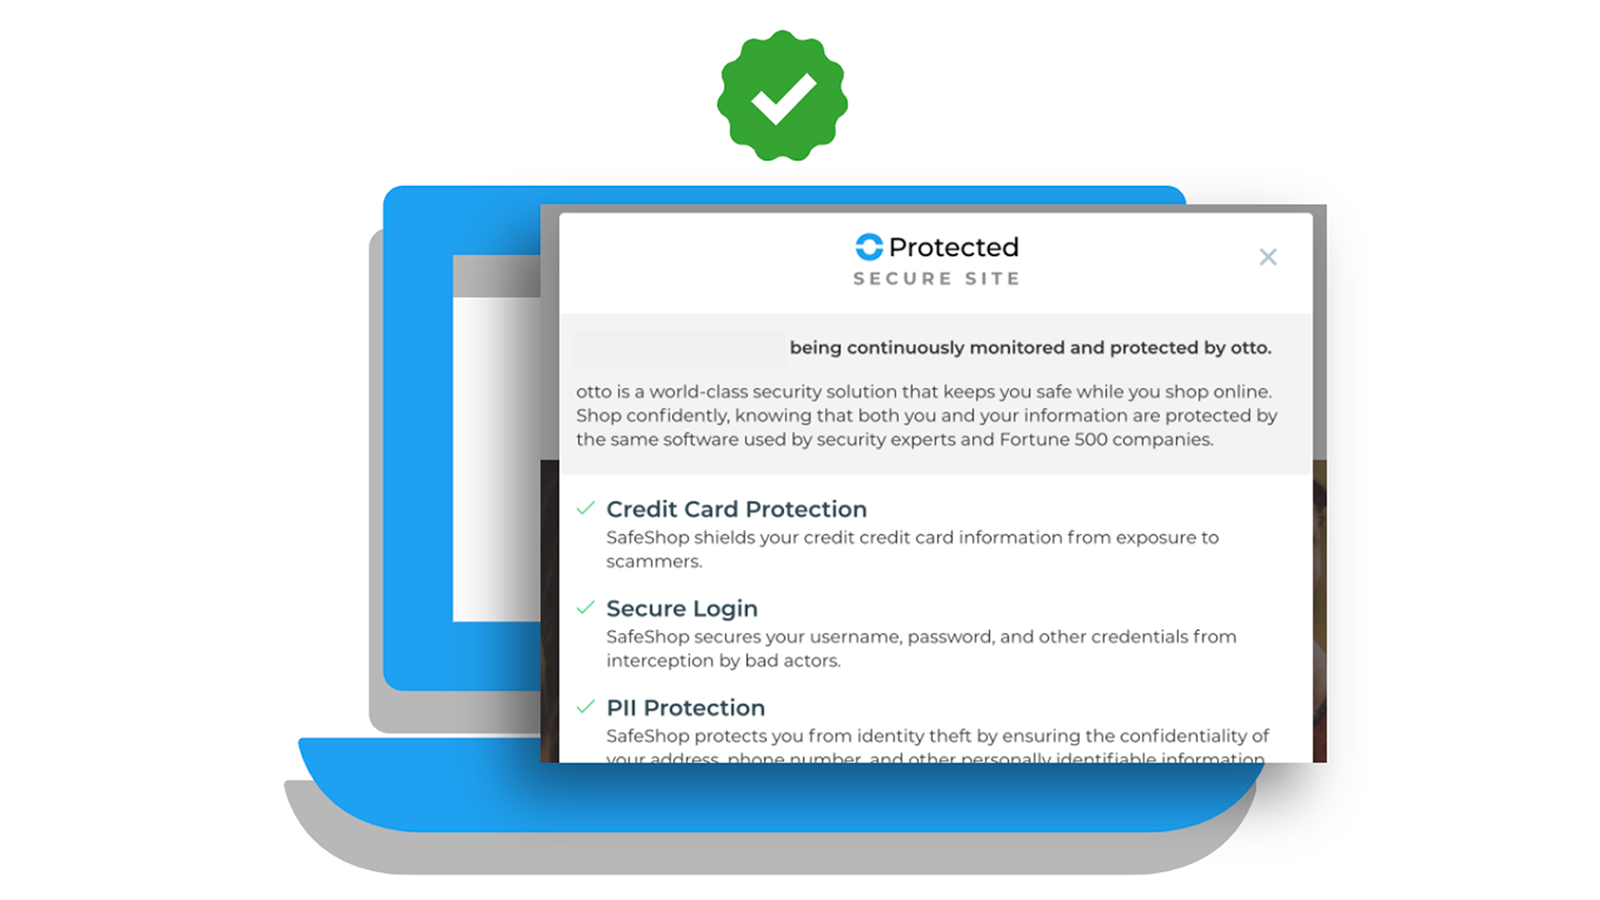 SafeShop Protected Promise shows you're Verified & Protected